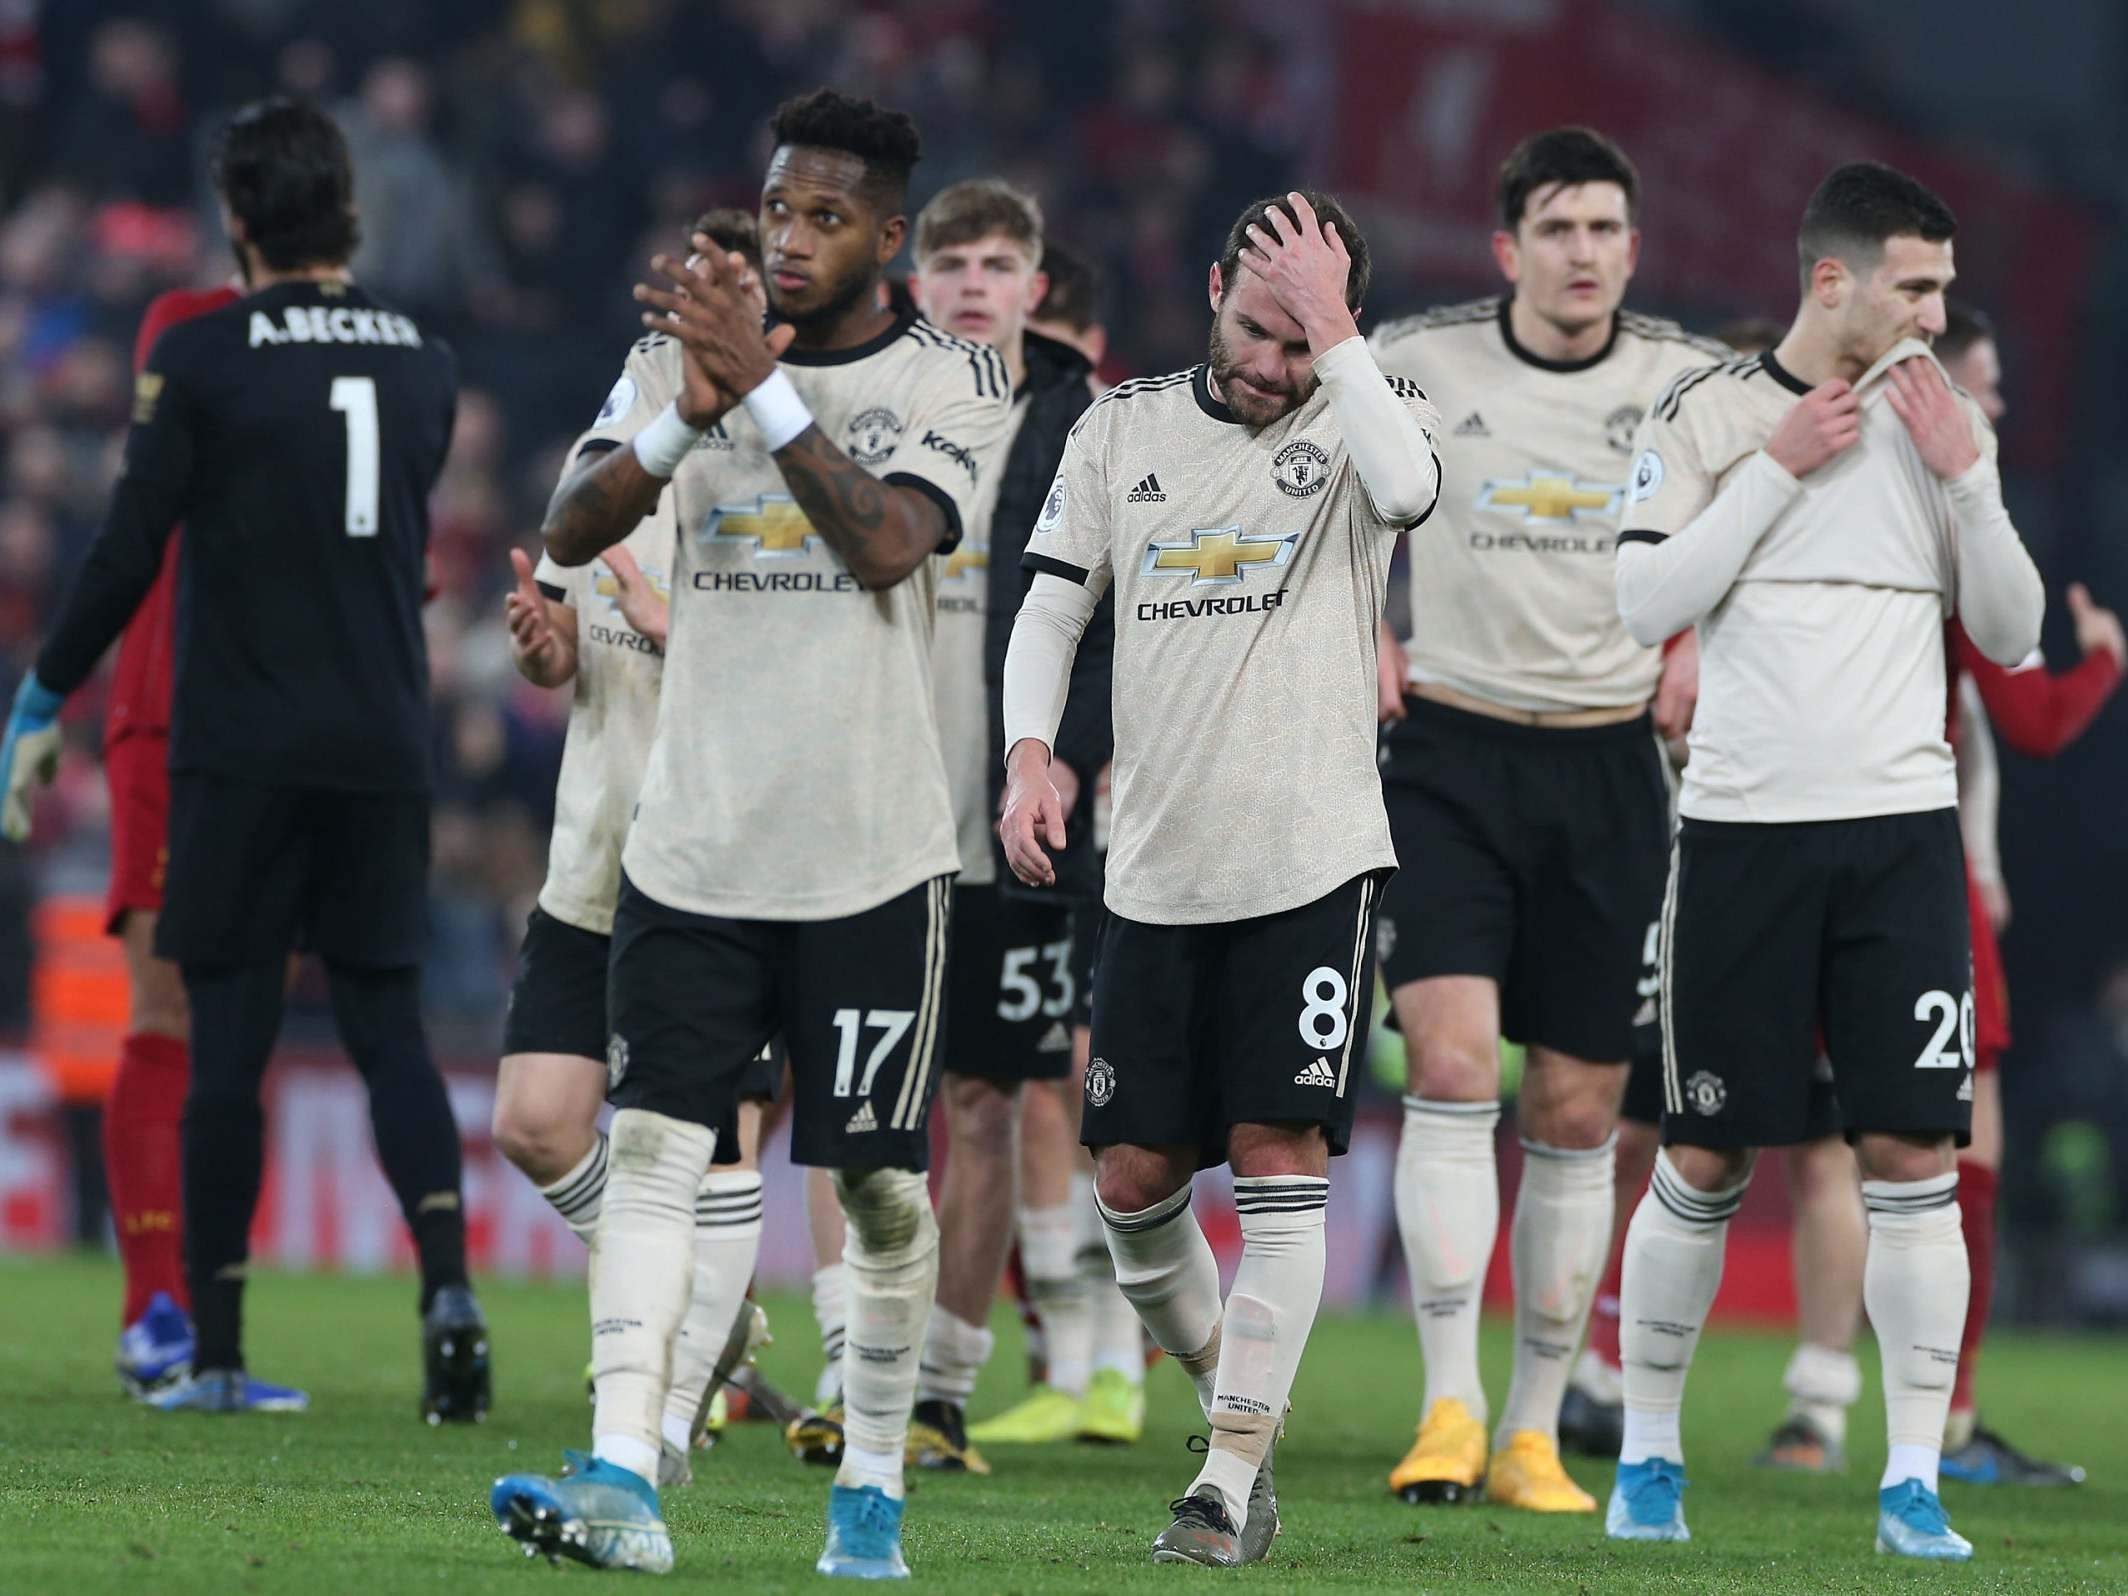 Don't be fooled, lightweight Manchester United are no longer on Liverpool's level